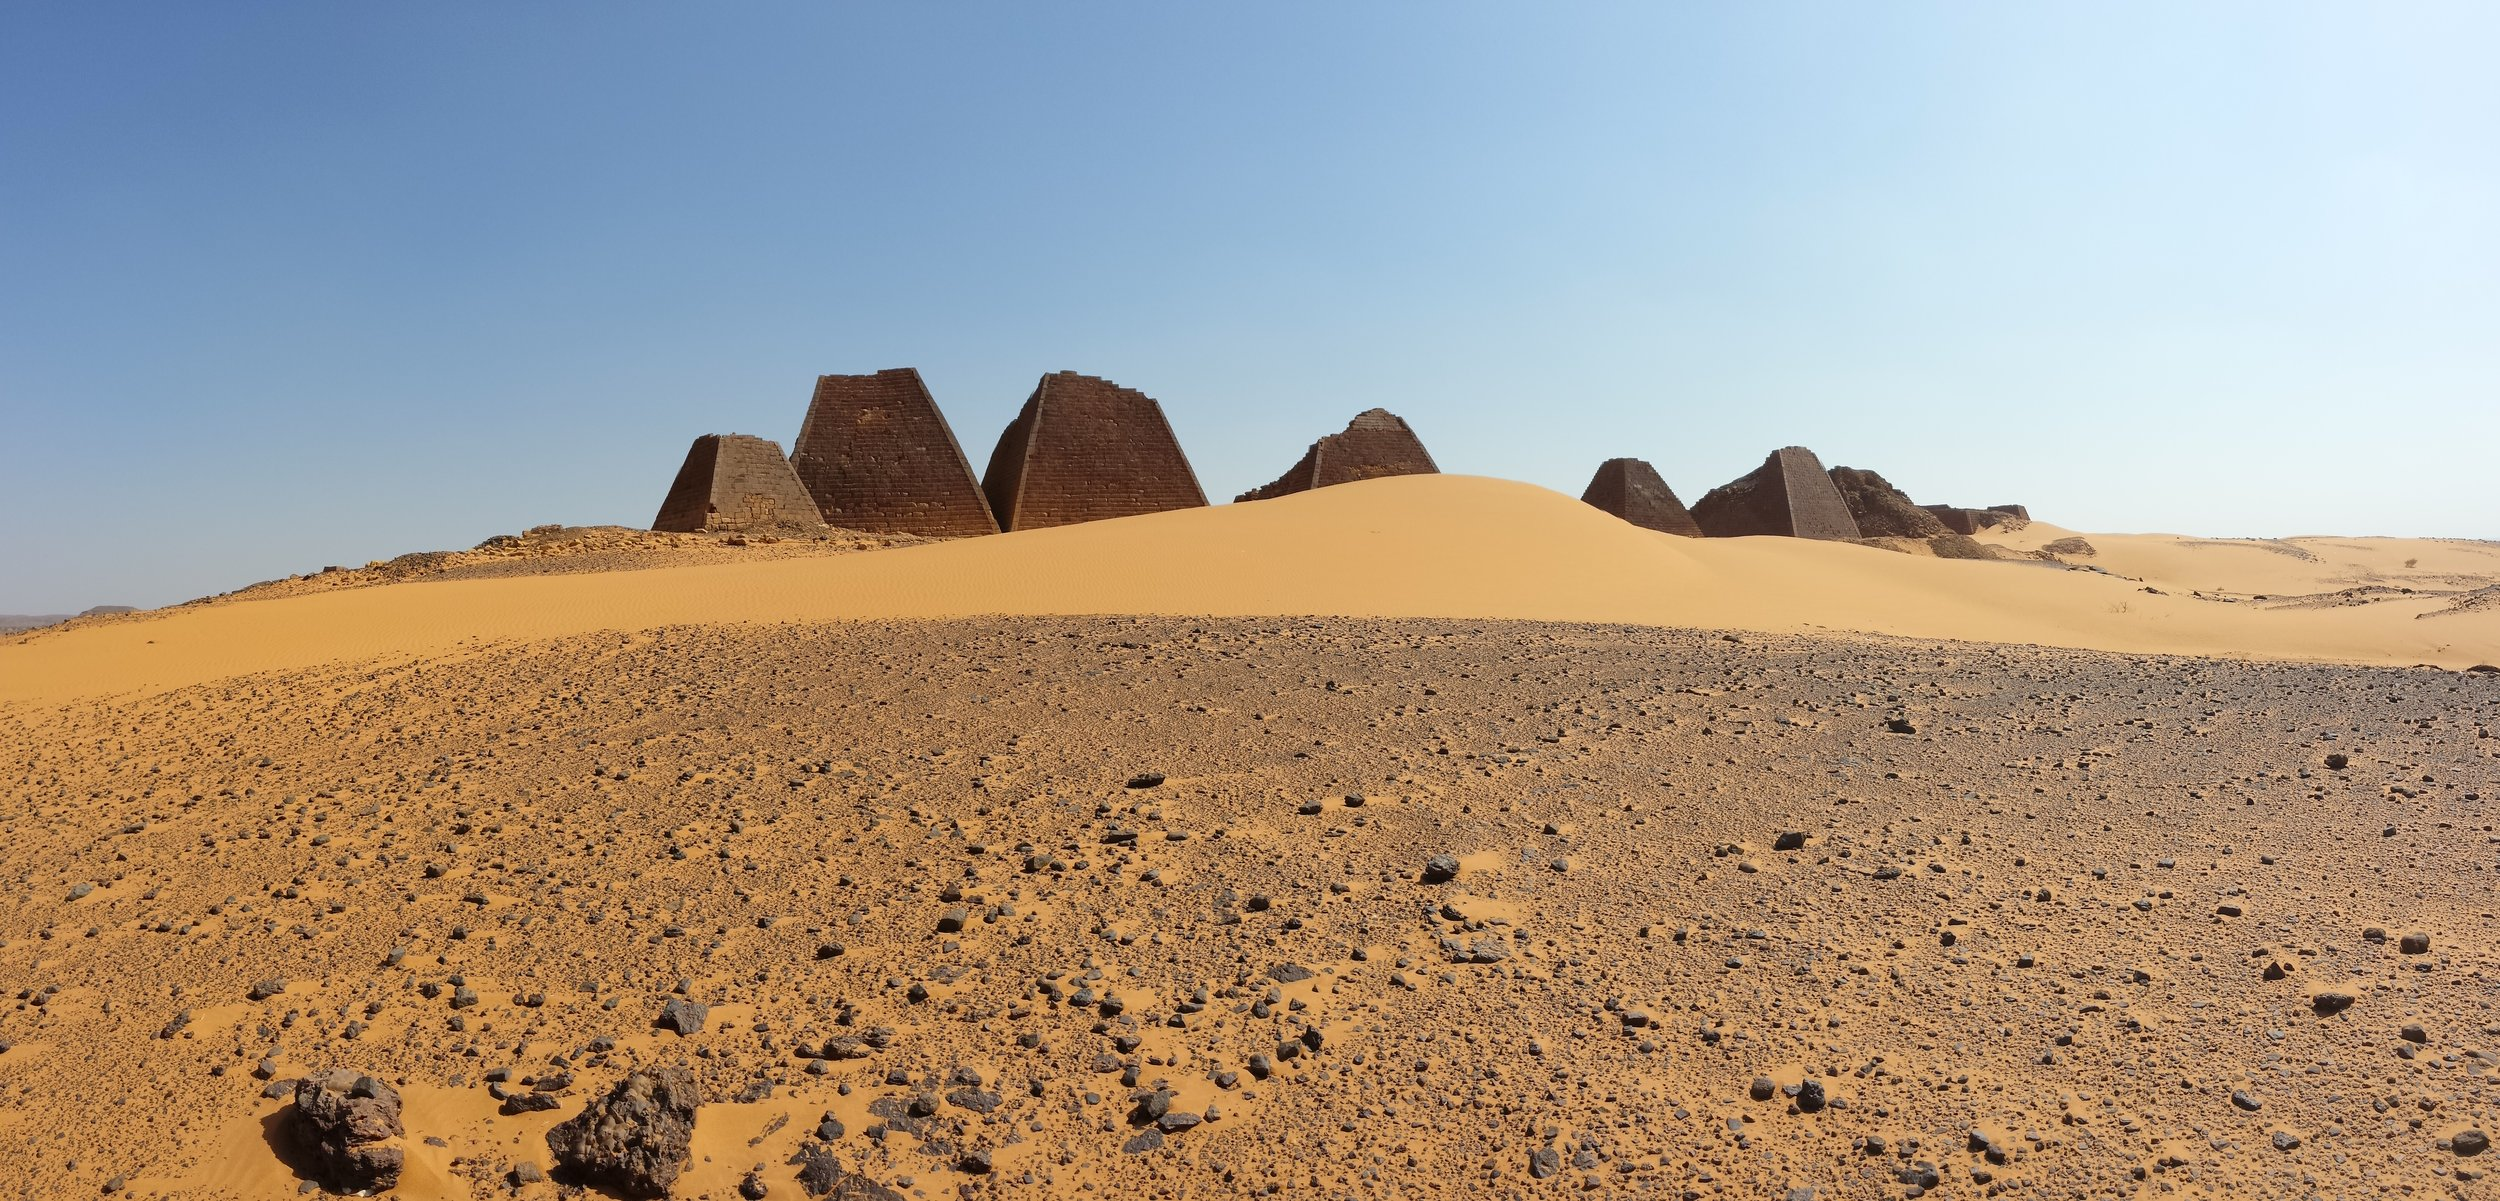 The tops of the Pyramids of Meroe were knocked off by some Italian jackass looking for gold in the 1800s.